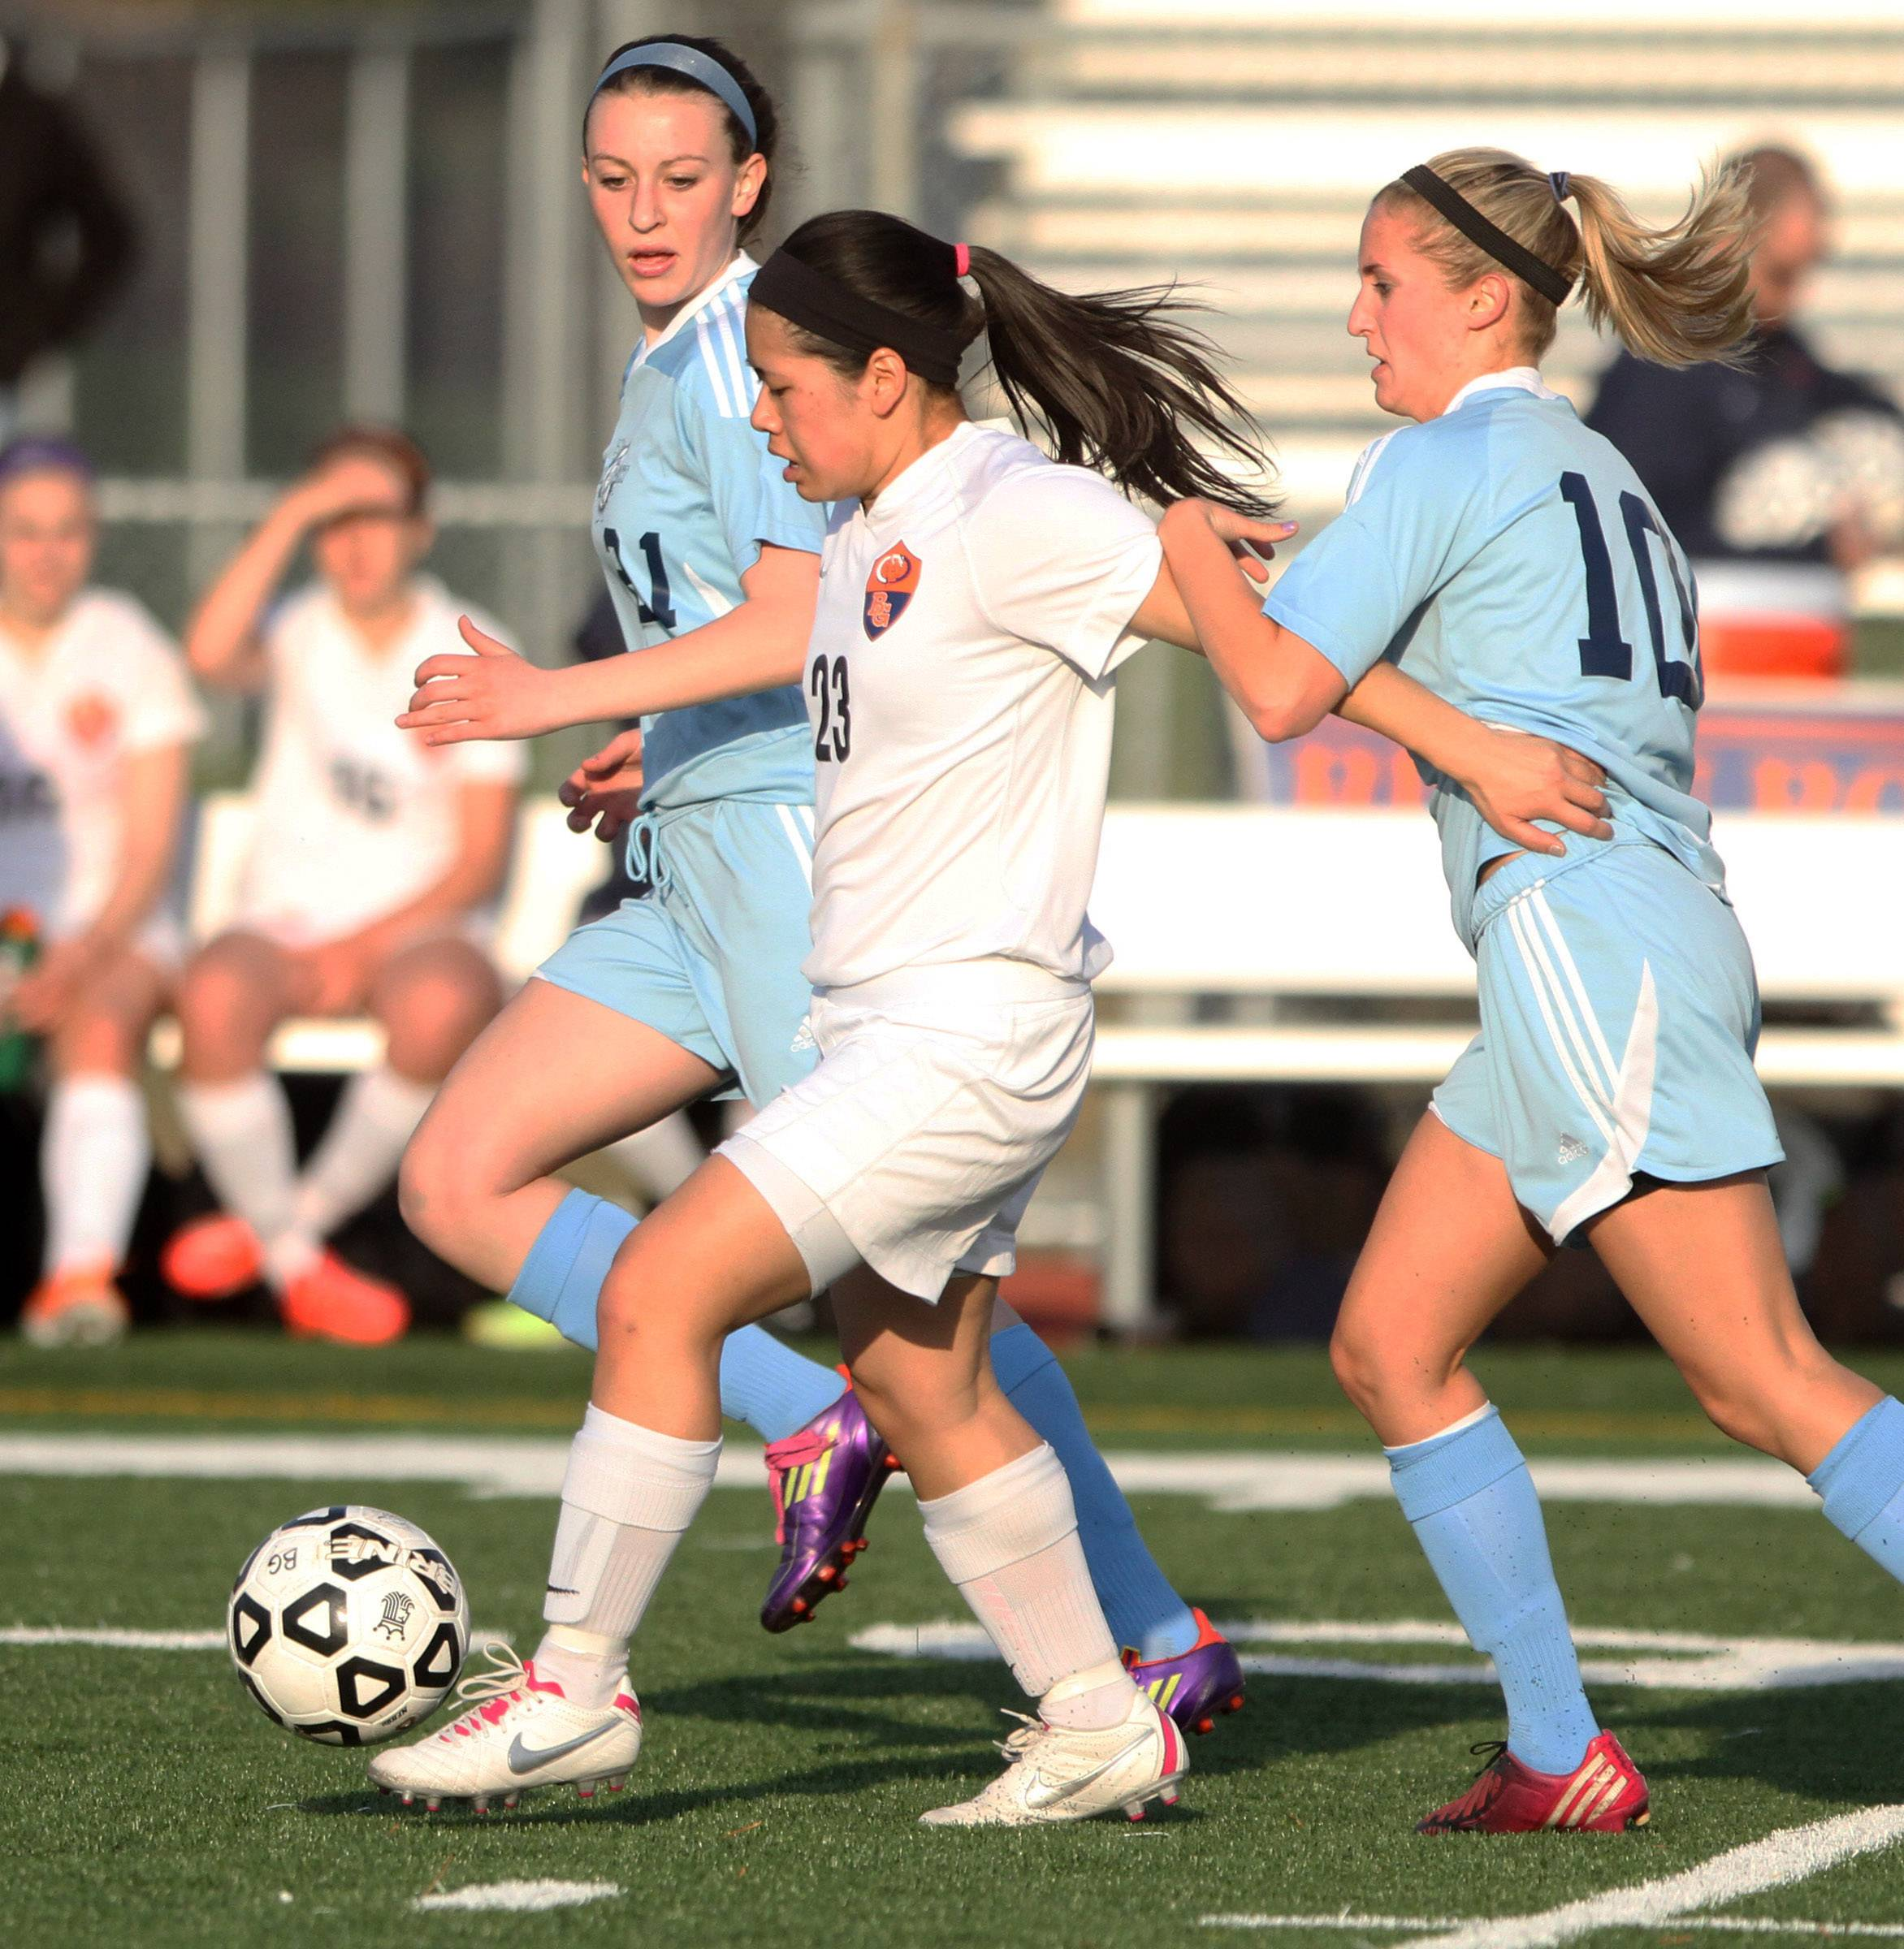 Buffalo Grove defender Elizabeth Chan passes the ball while sandwiched between Prospect forward Alyson Kobler, left, and forward Emily Novak on Friday at Buffalo Grove.